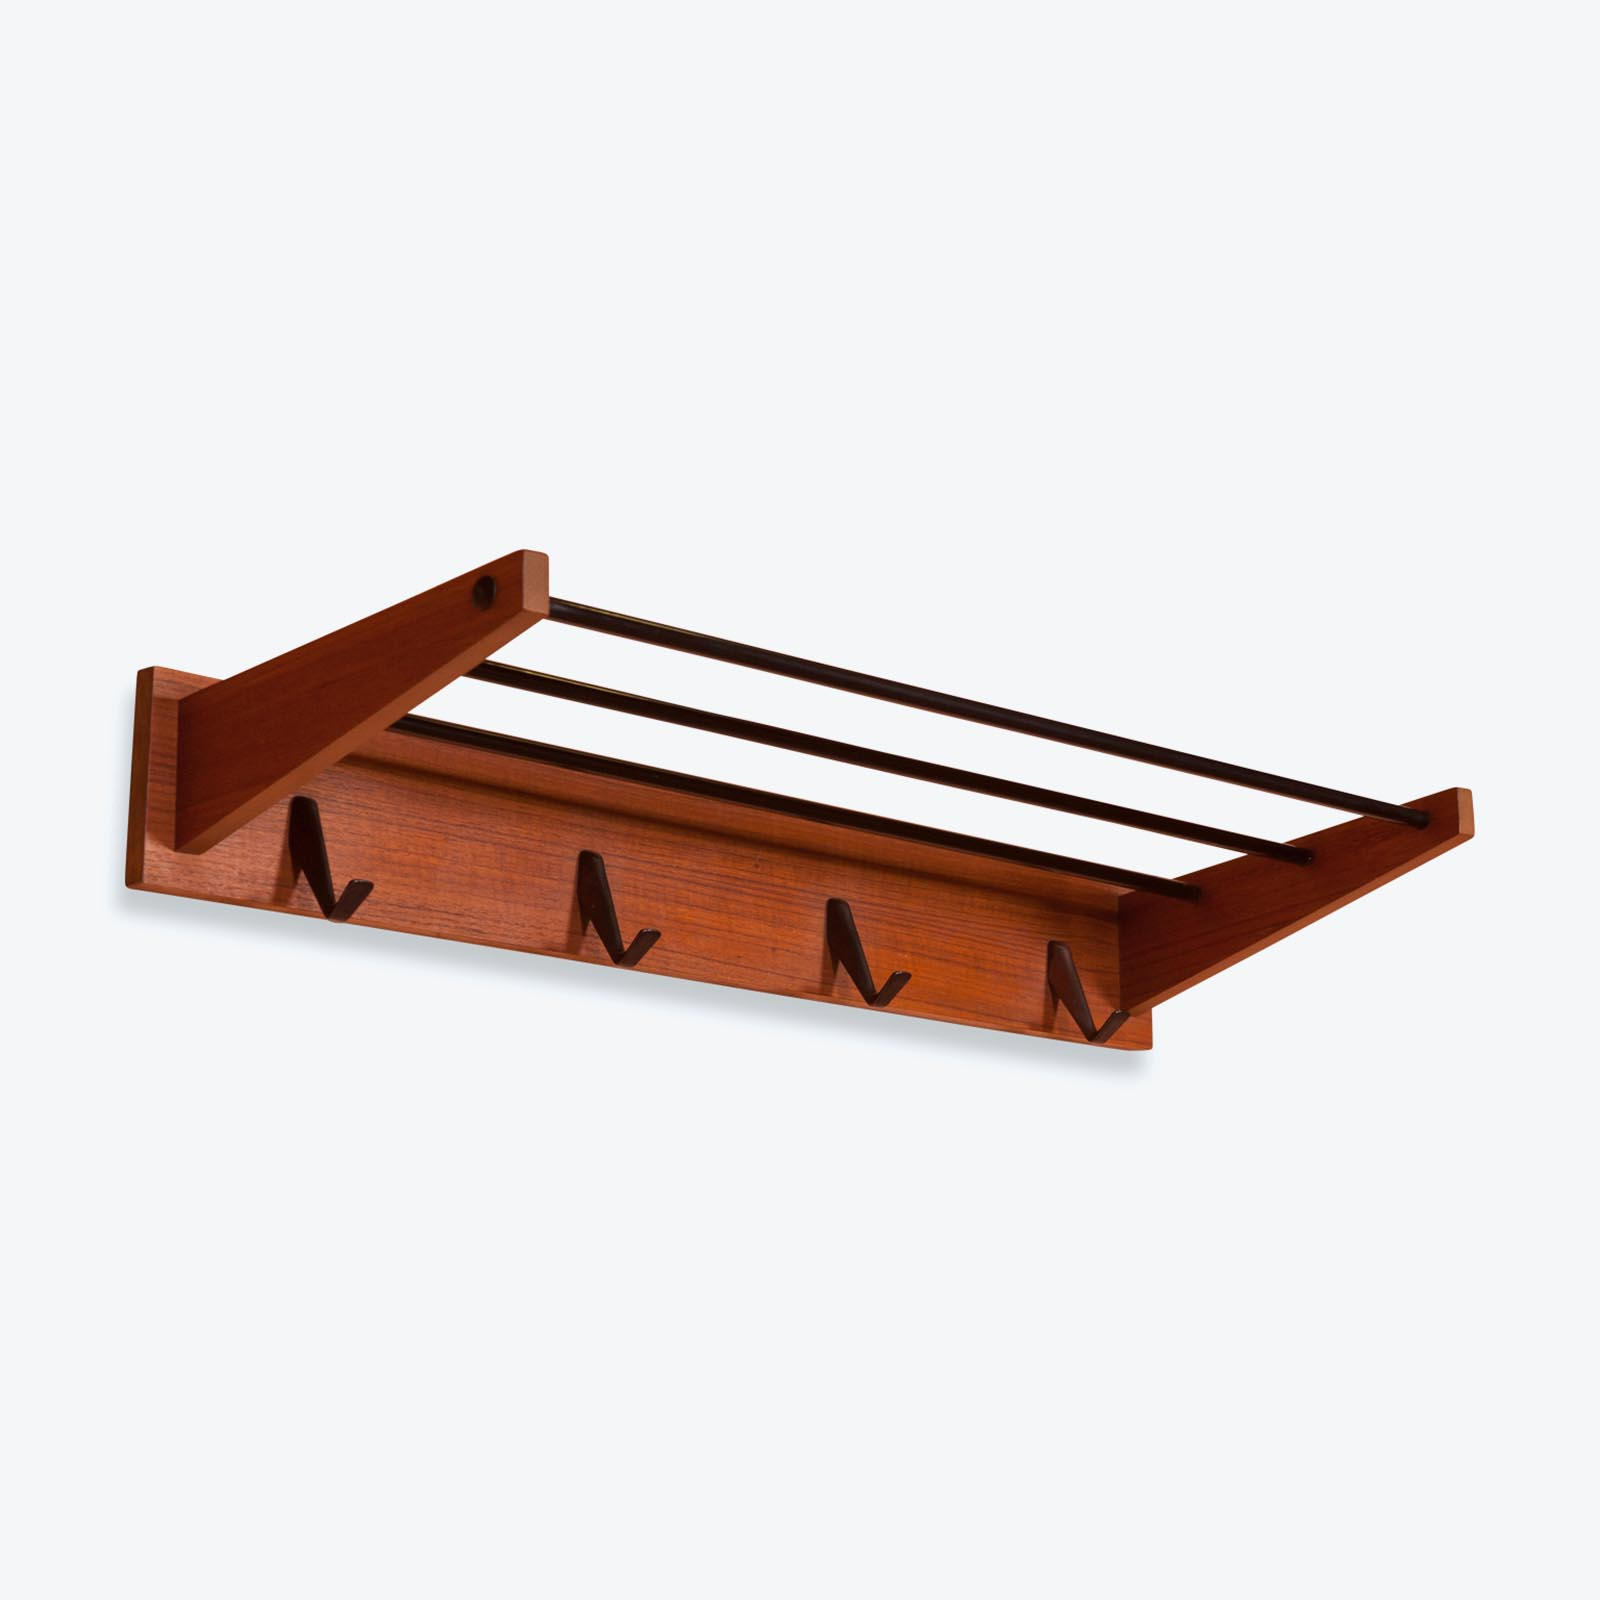 coat-rack-and-umbrella-stand-in-teak-1960s-denmark-02